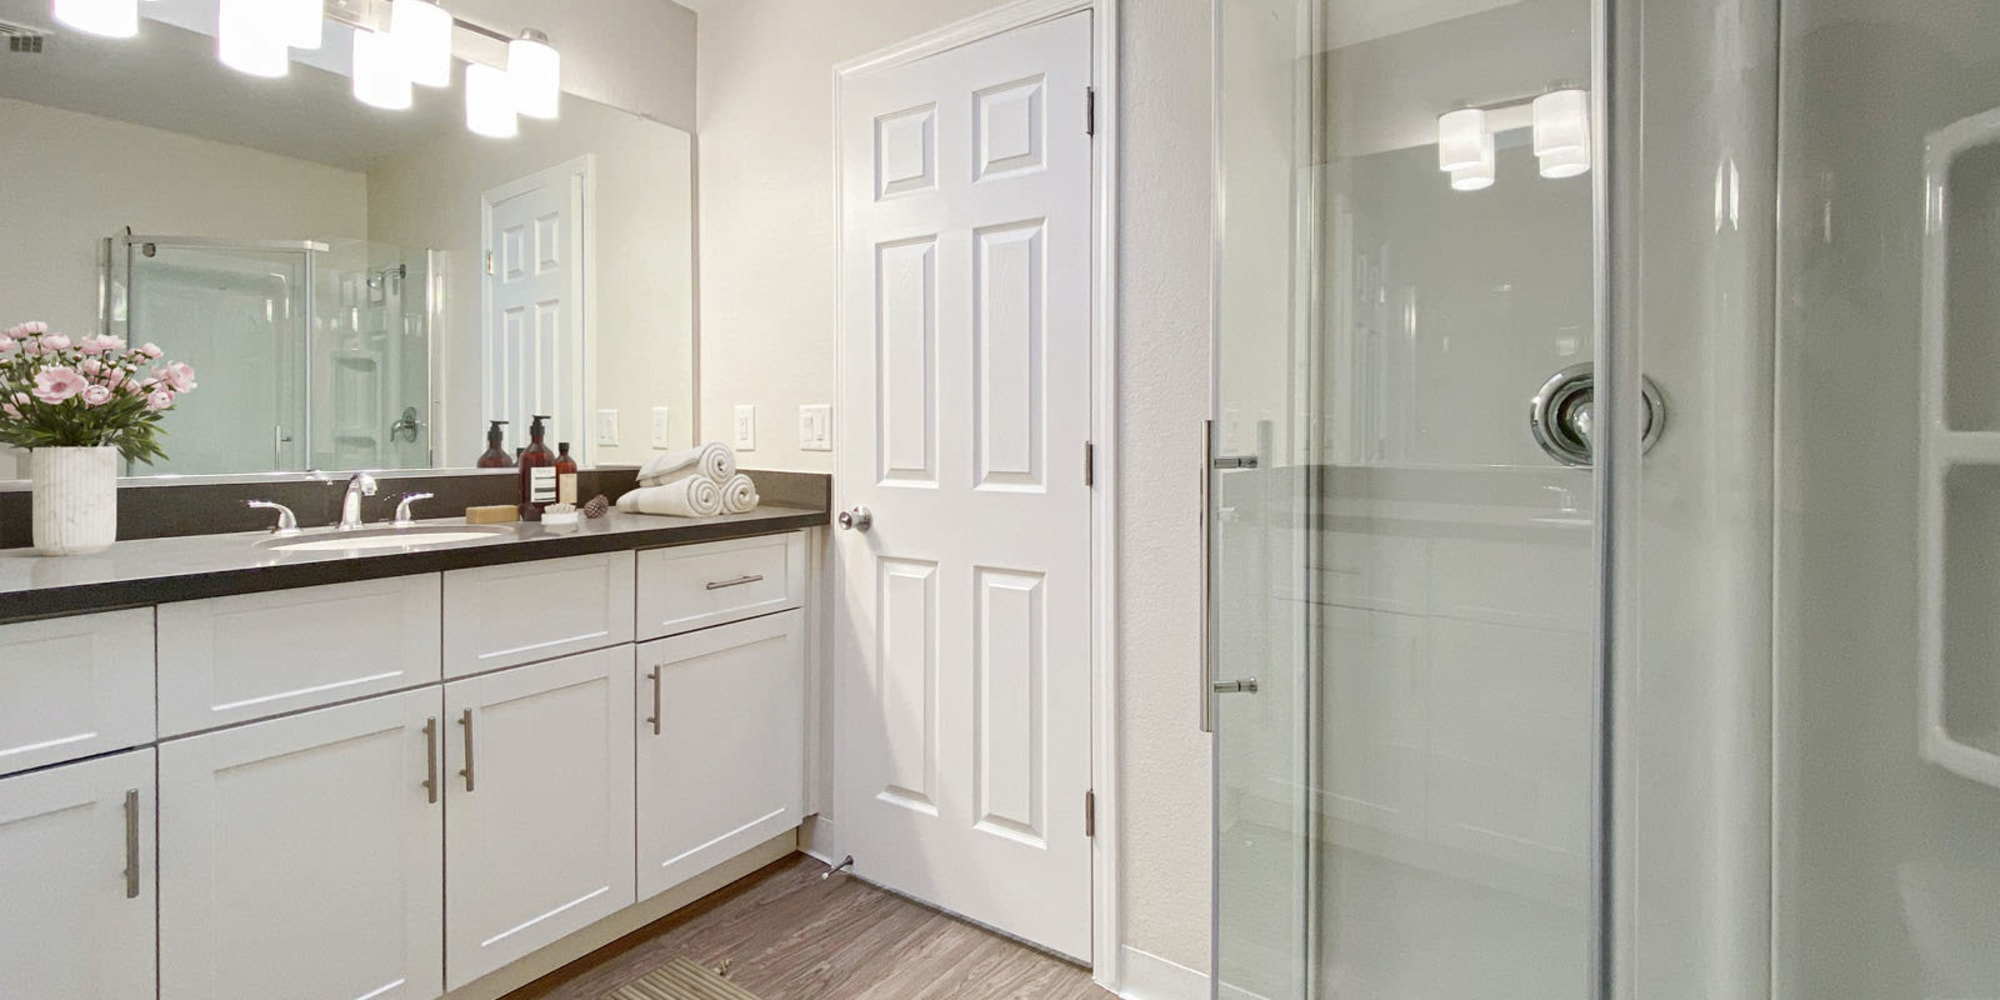 Ample storage space and glass shower doors in a model apartment's bathroom at Valley Plaza Villages in Pleasanton, California